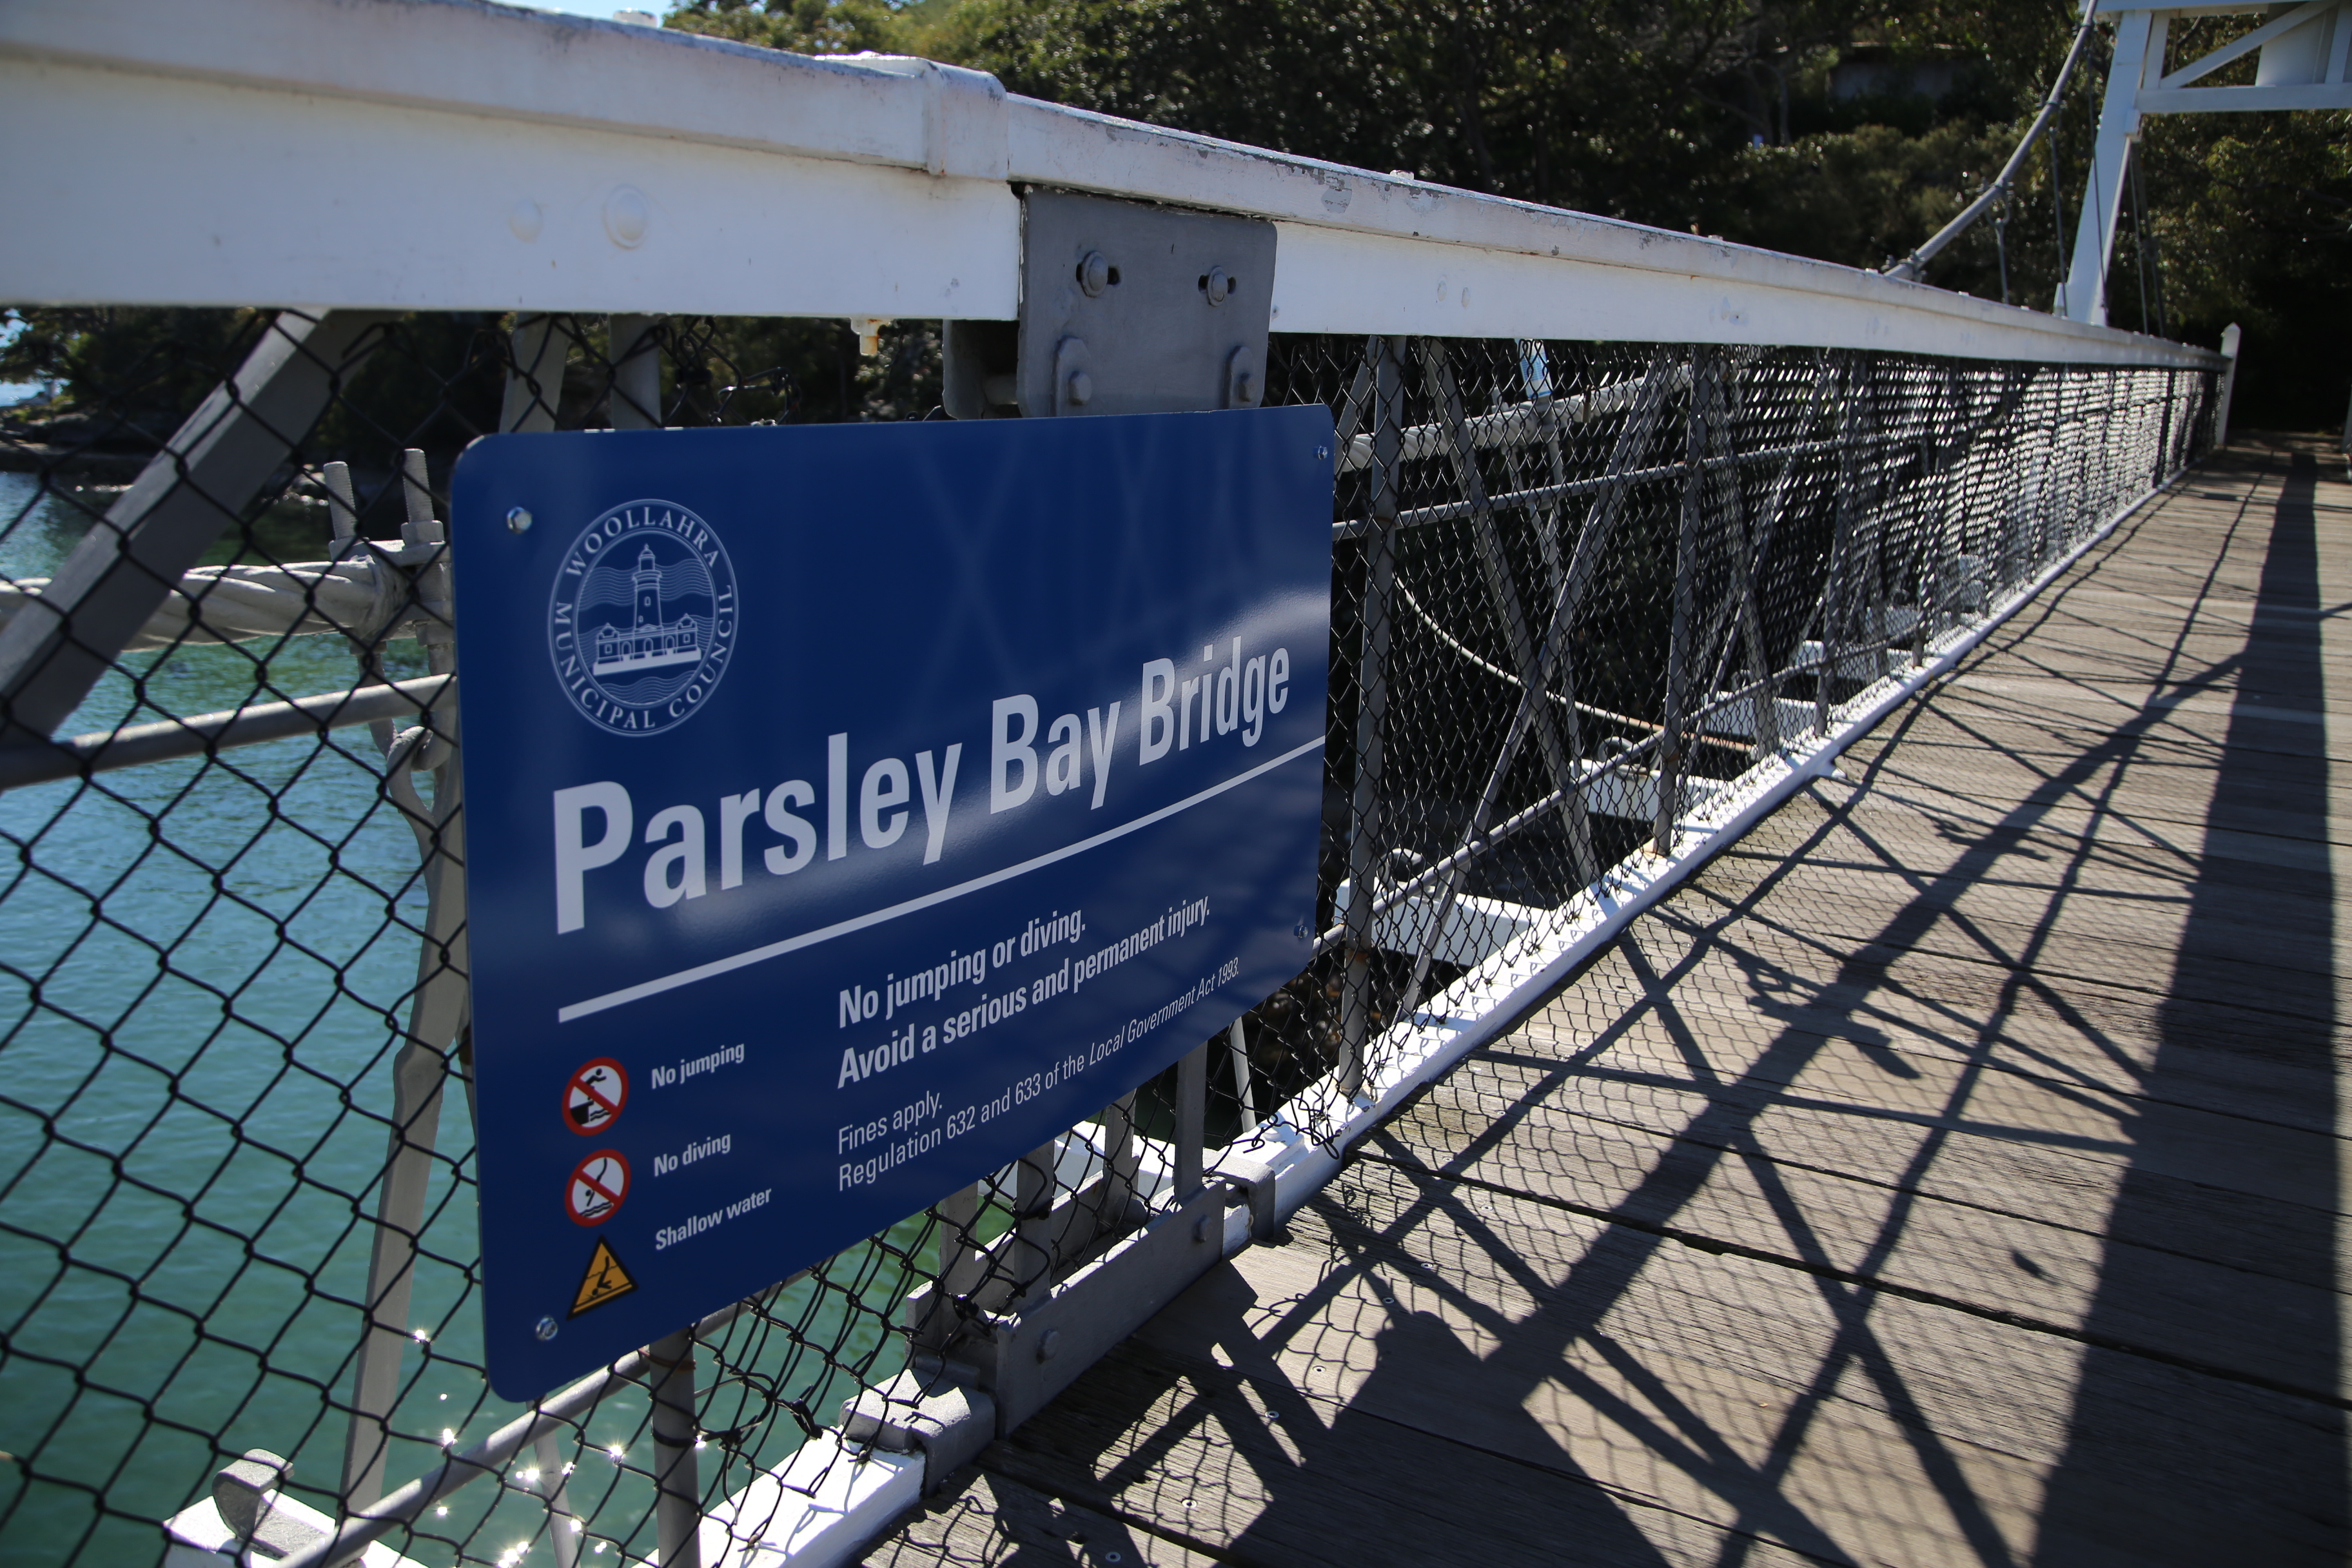 'No Jumping' signs installed on Parsley Bay suspension bridge